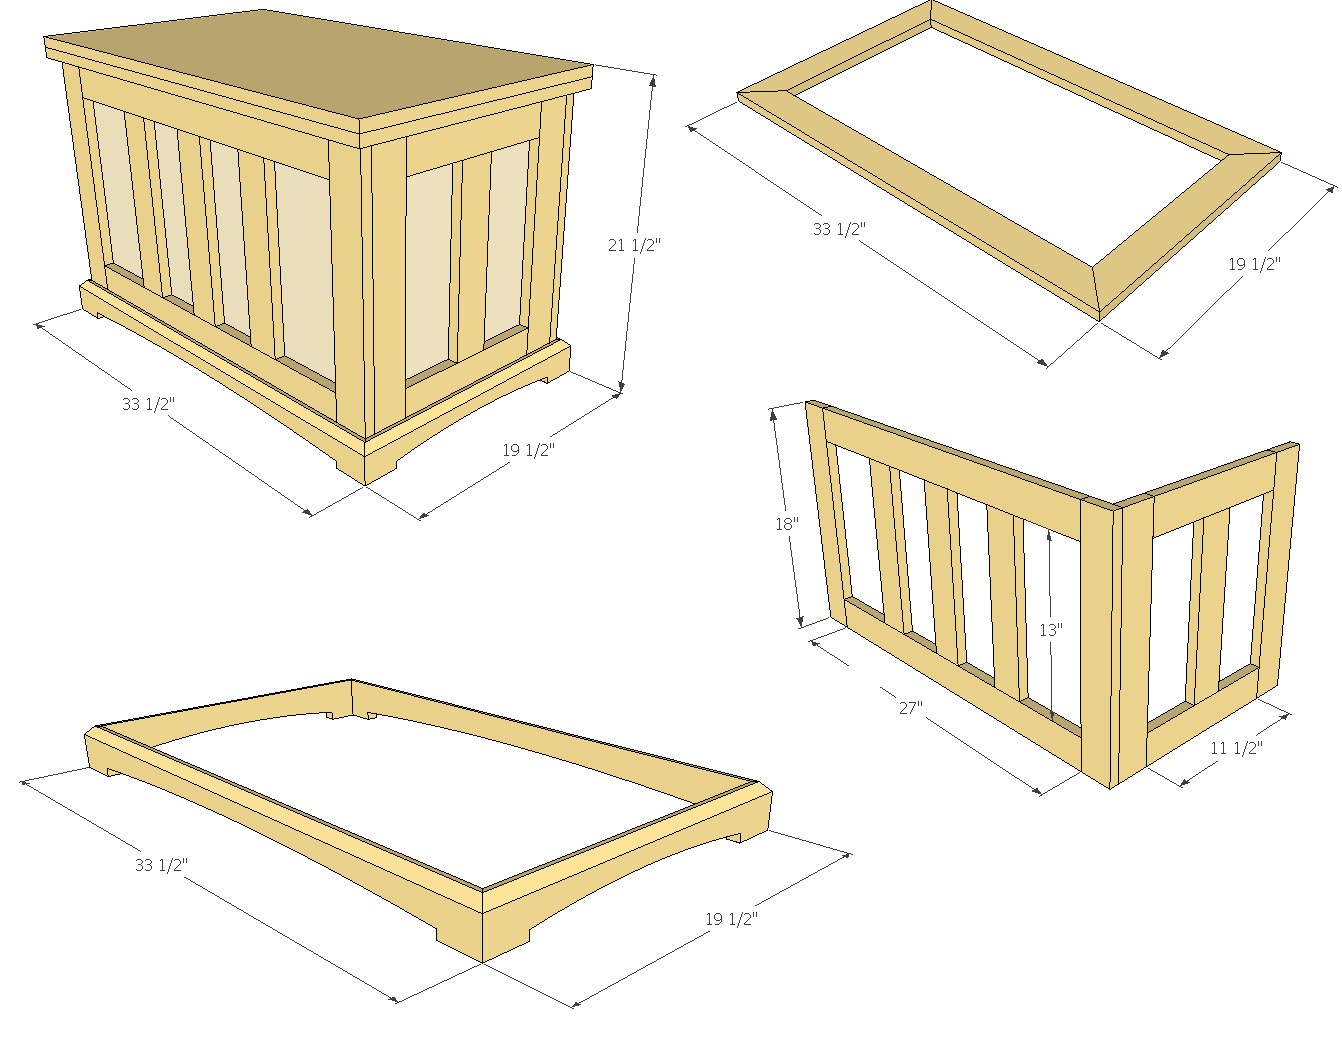 Permalink to plans to build a toy chest